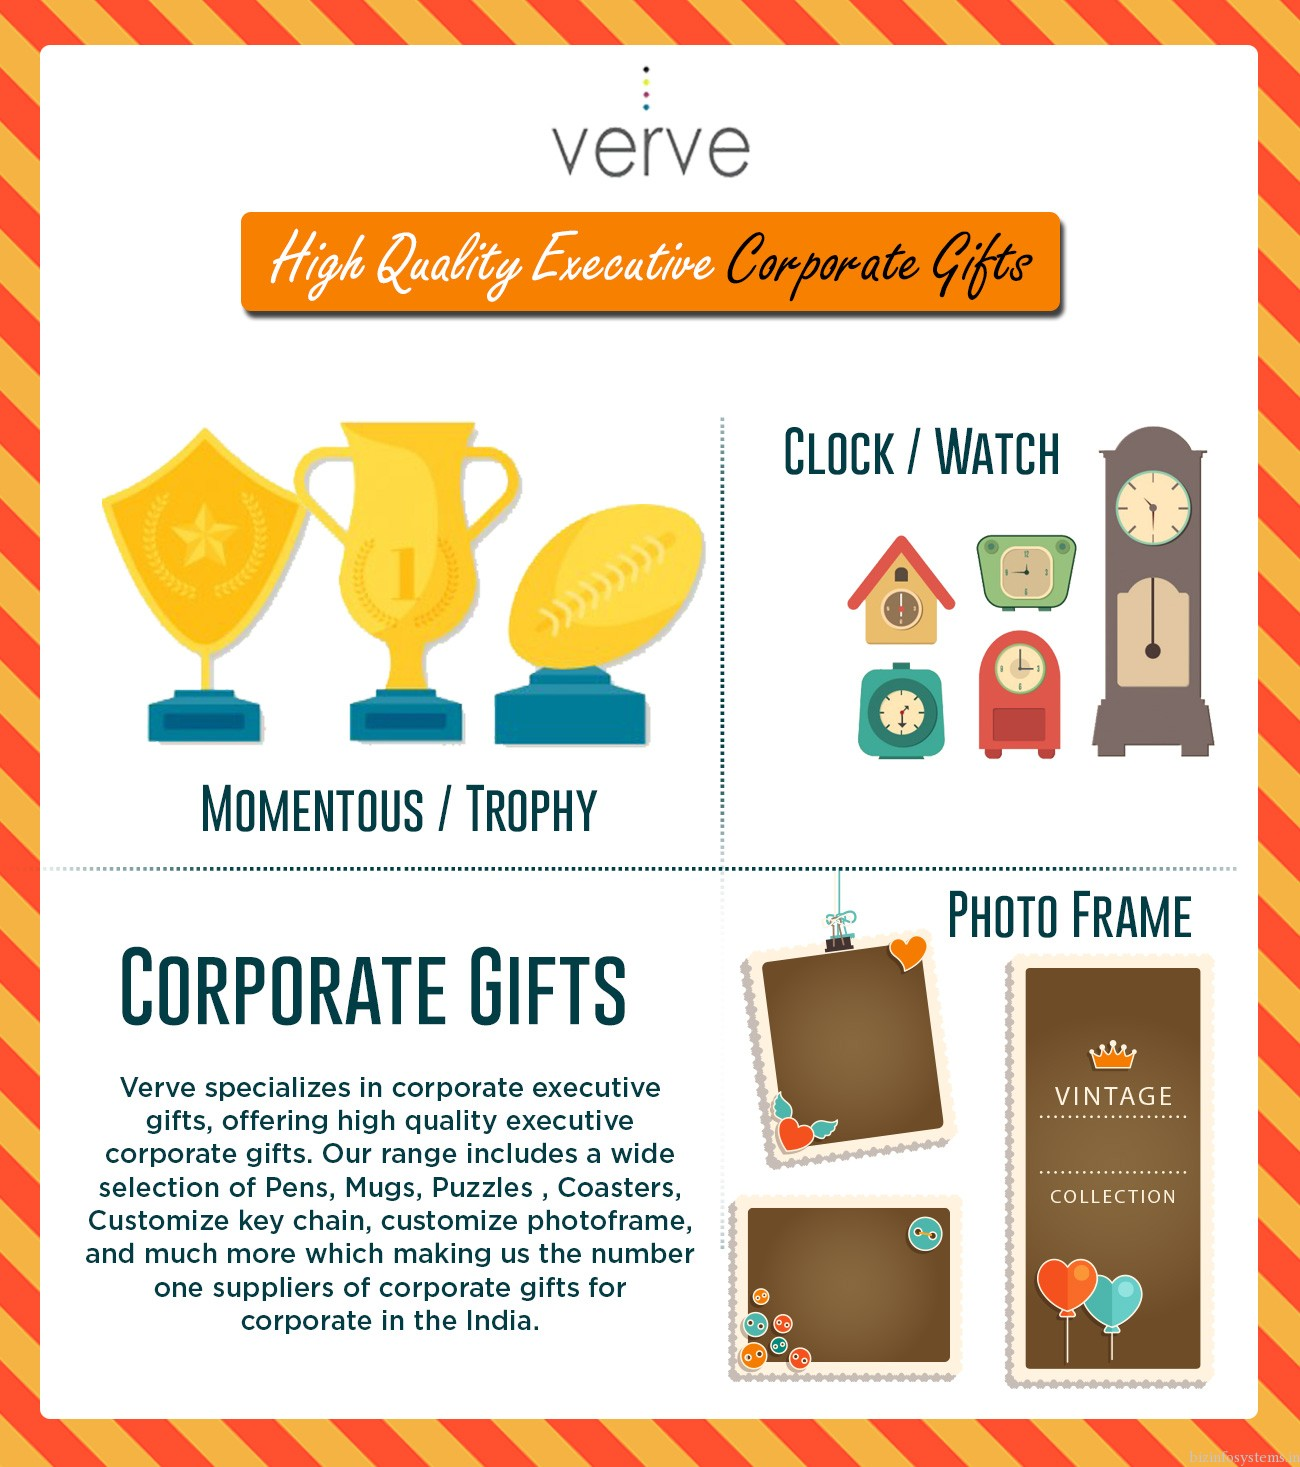 Verve Corporate Gifts Suppliers / Image 3